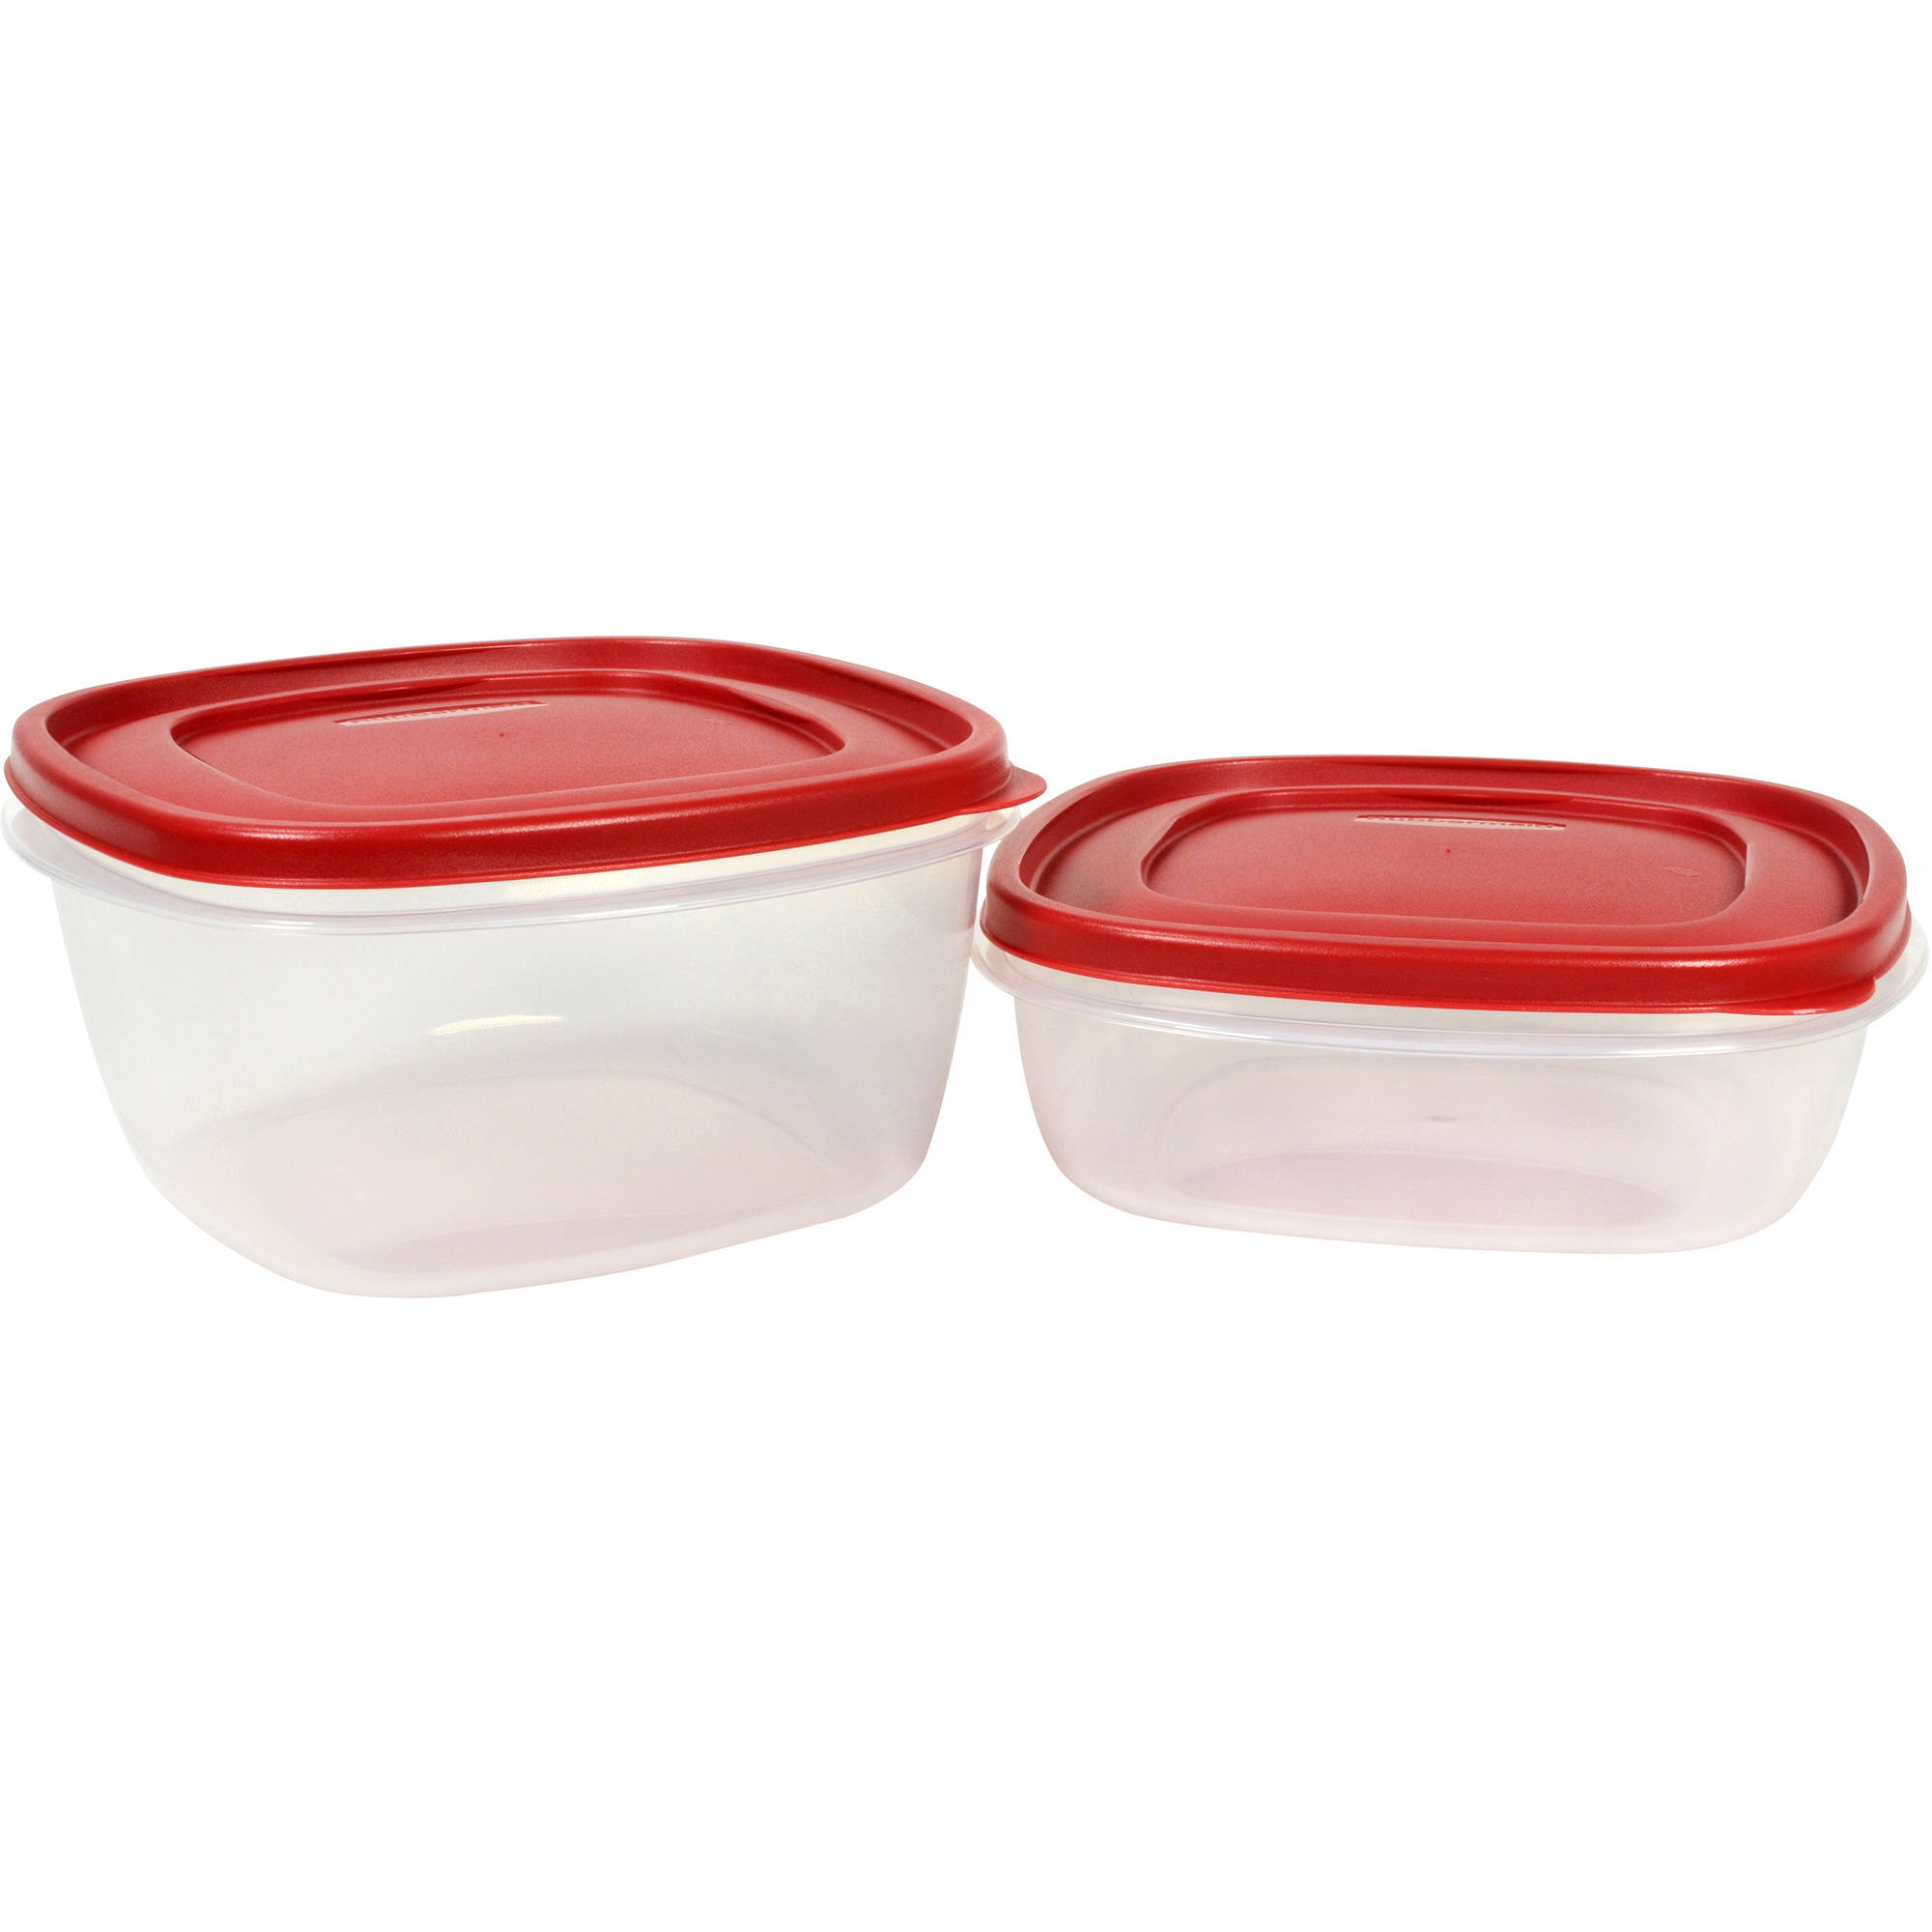 Newell Rubbermaid Rubbermaid Easy Find Lids Food Storage Container, 9 Cup and 14 Cup, 2pk